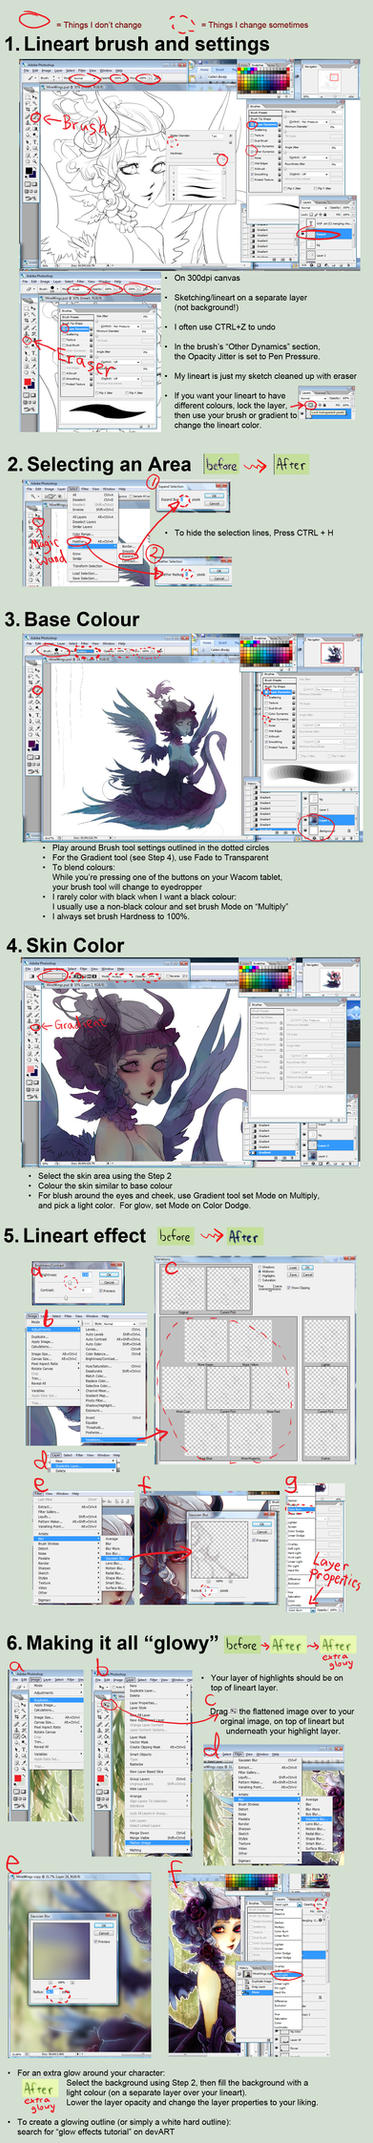 Tutorial all in one pic by bluefeathers